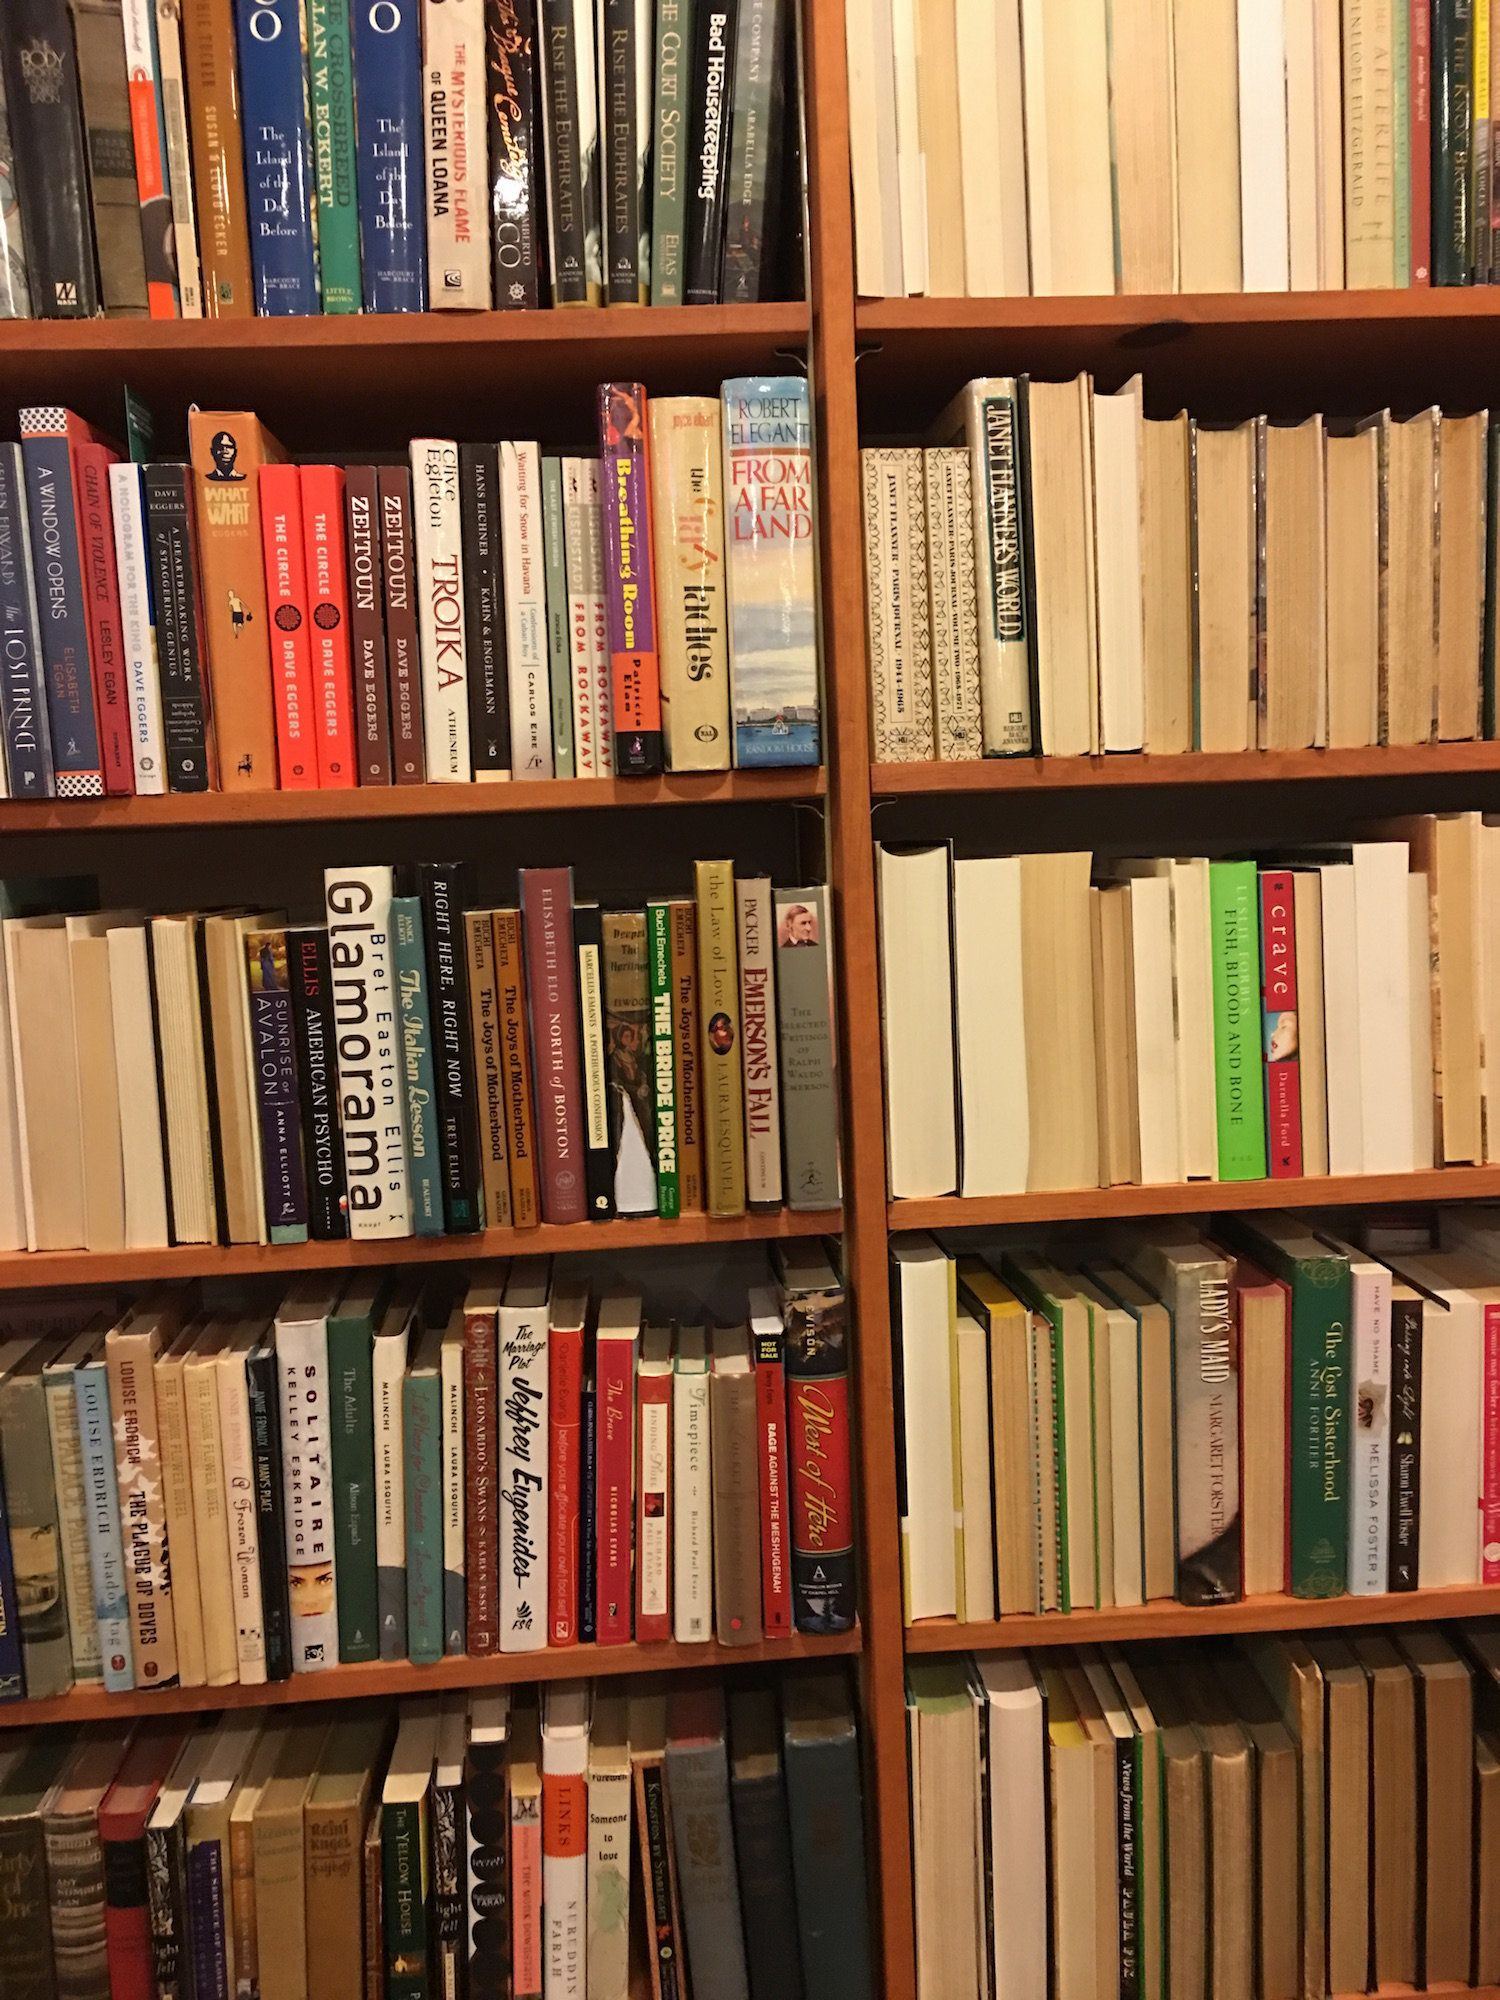 We spot Jeffrey Eugenides and Bret Easton Ellis on this seemingly half-complete shelf.